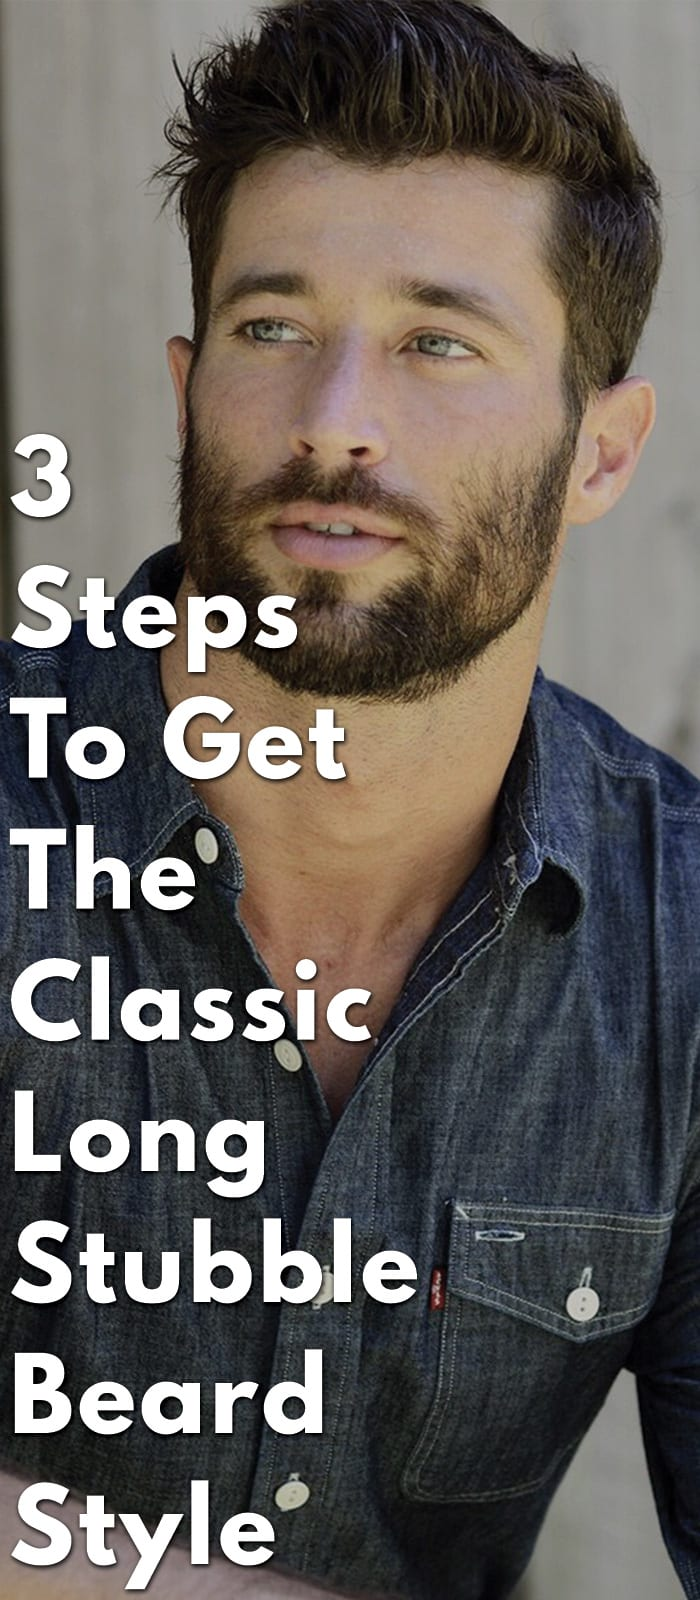 3-Steps-To-Get-The-Classic-Long-Stubble-Beard-Style